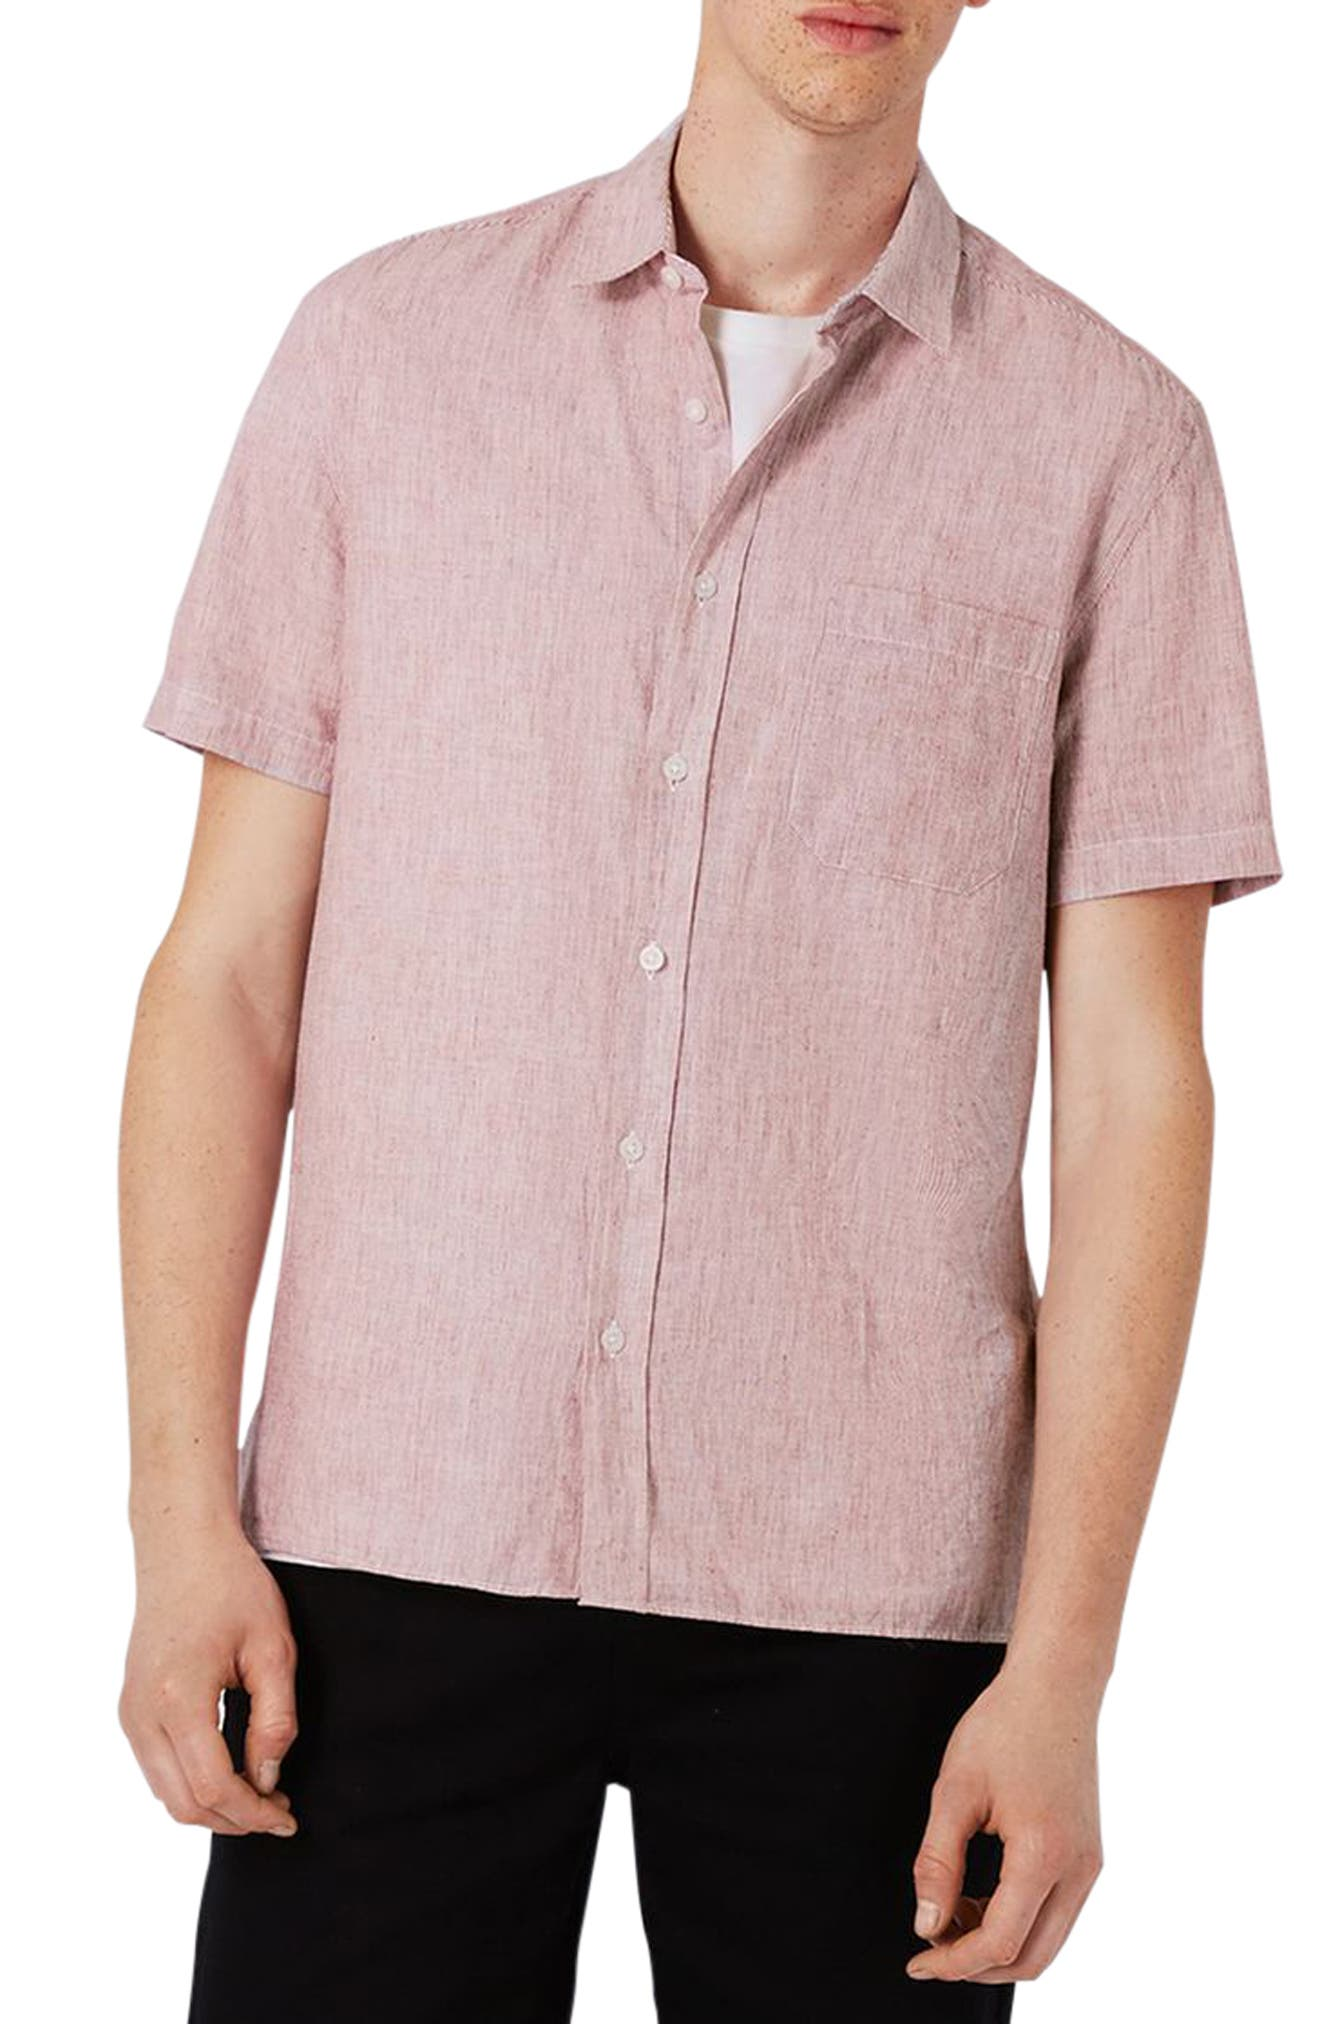 Topman Slim Fit Cotton & Linen Woven Shirt